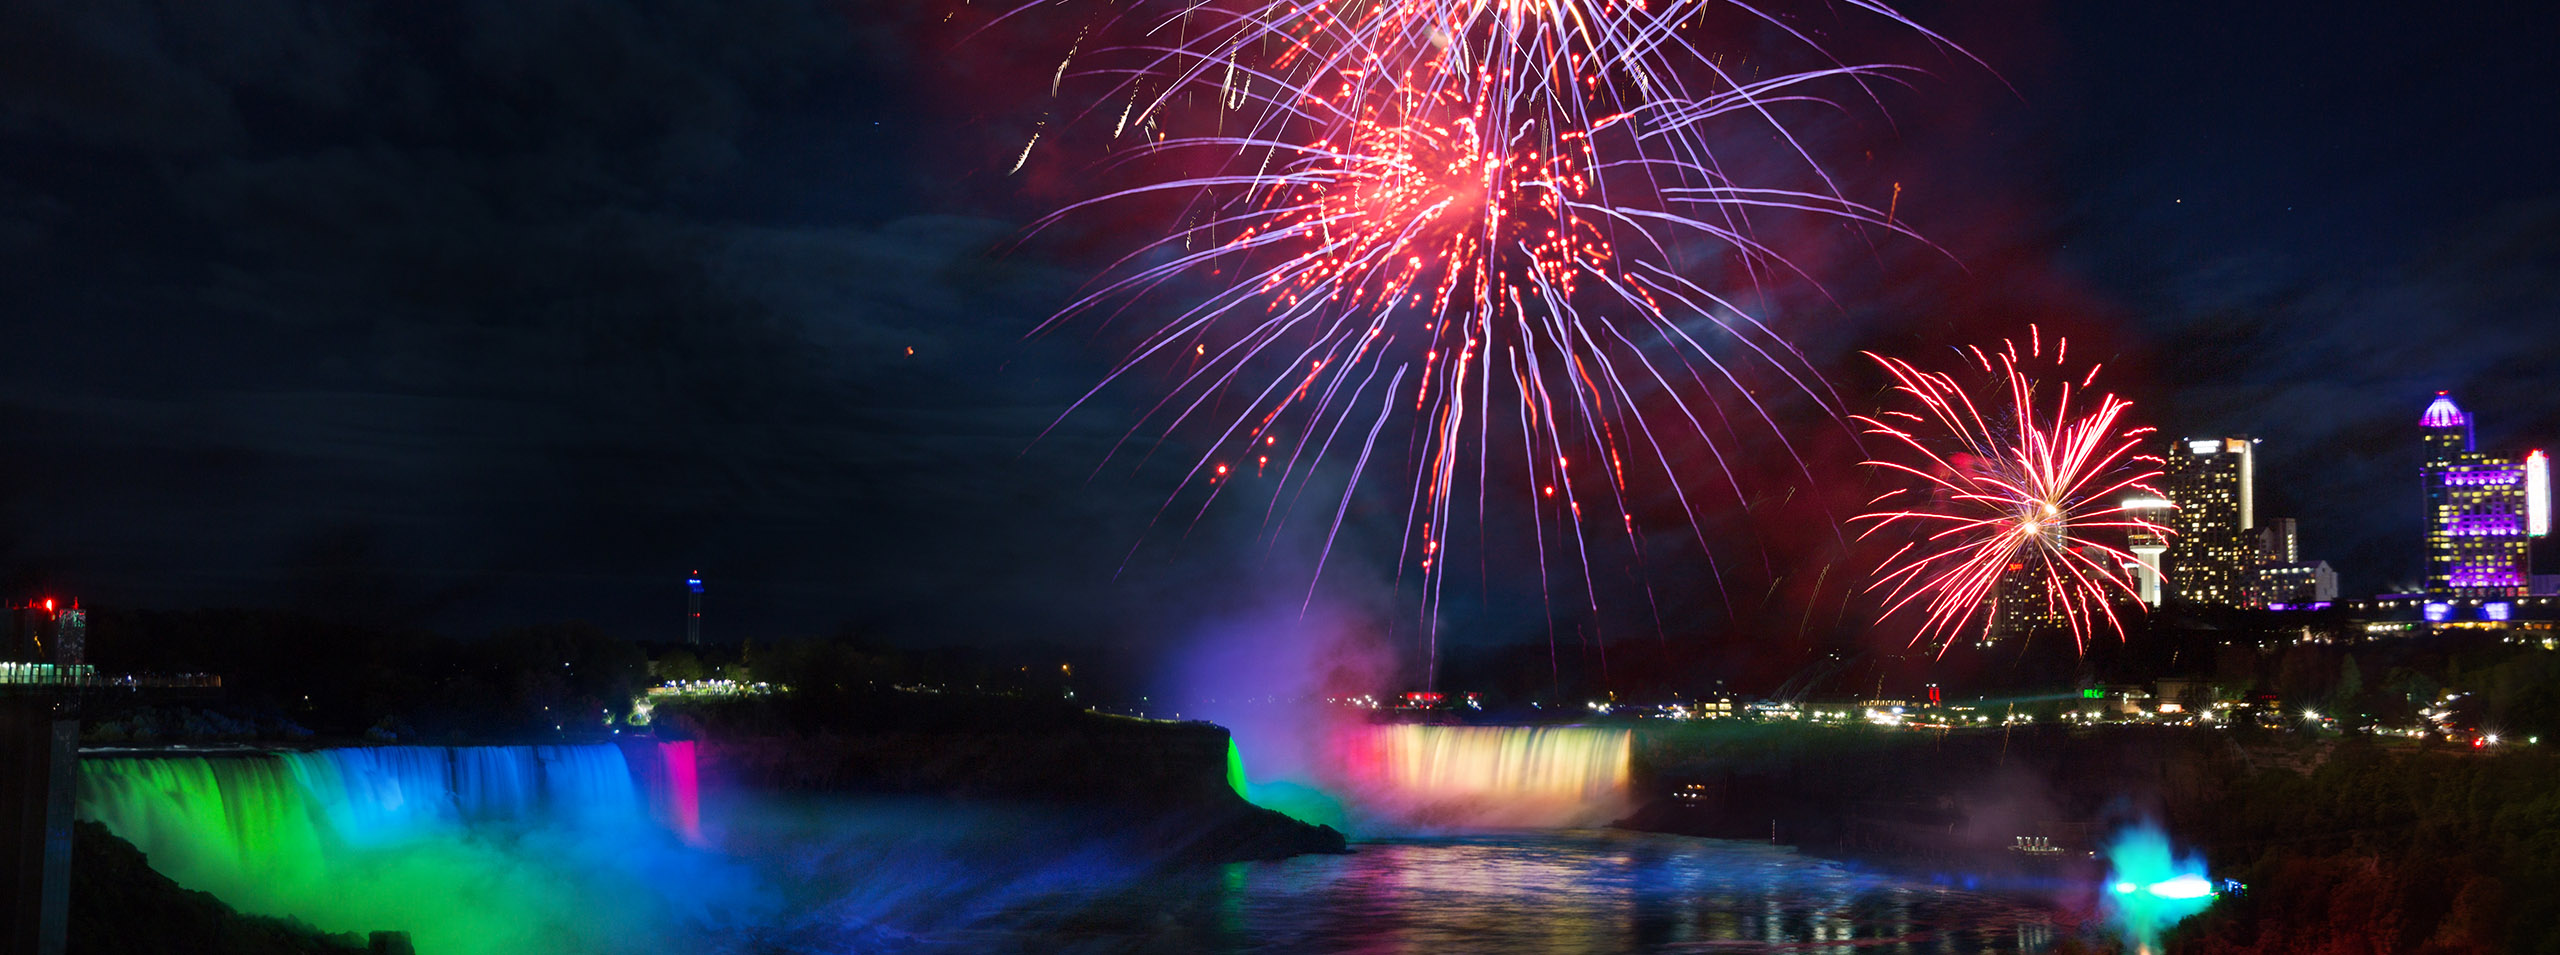 Falls Fireworks Series Celebrates 25th Anniversary with New and Expanded Schedule